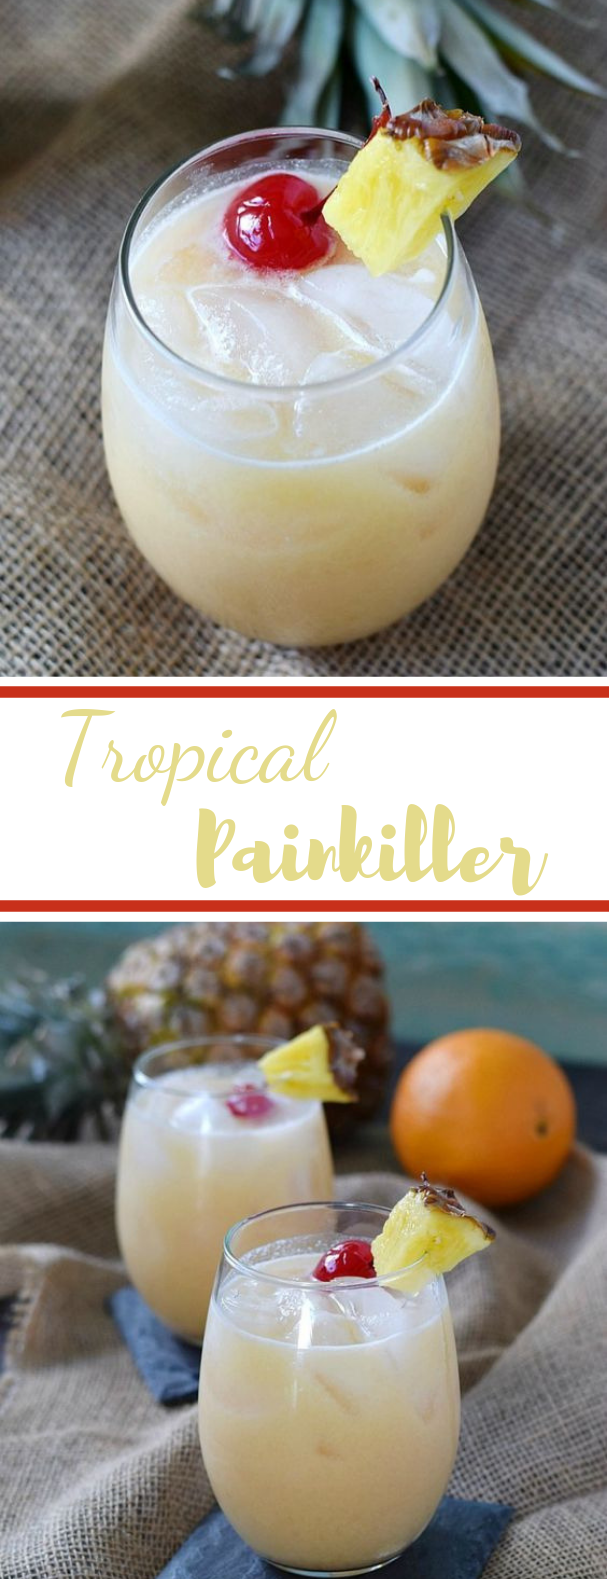 Tropical Painkiller #cocktail #drinks